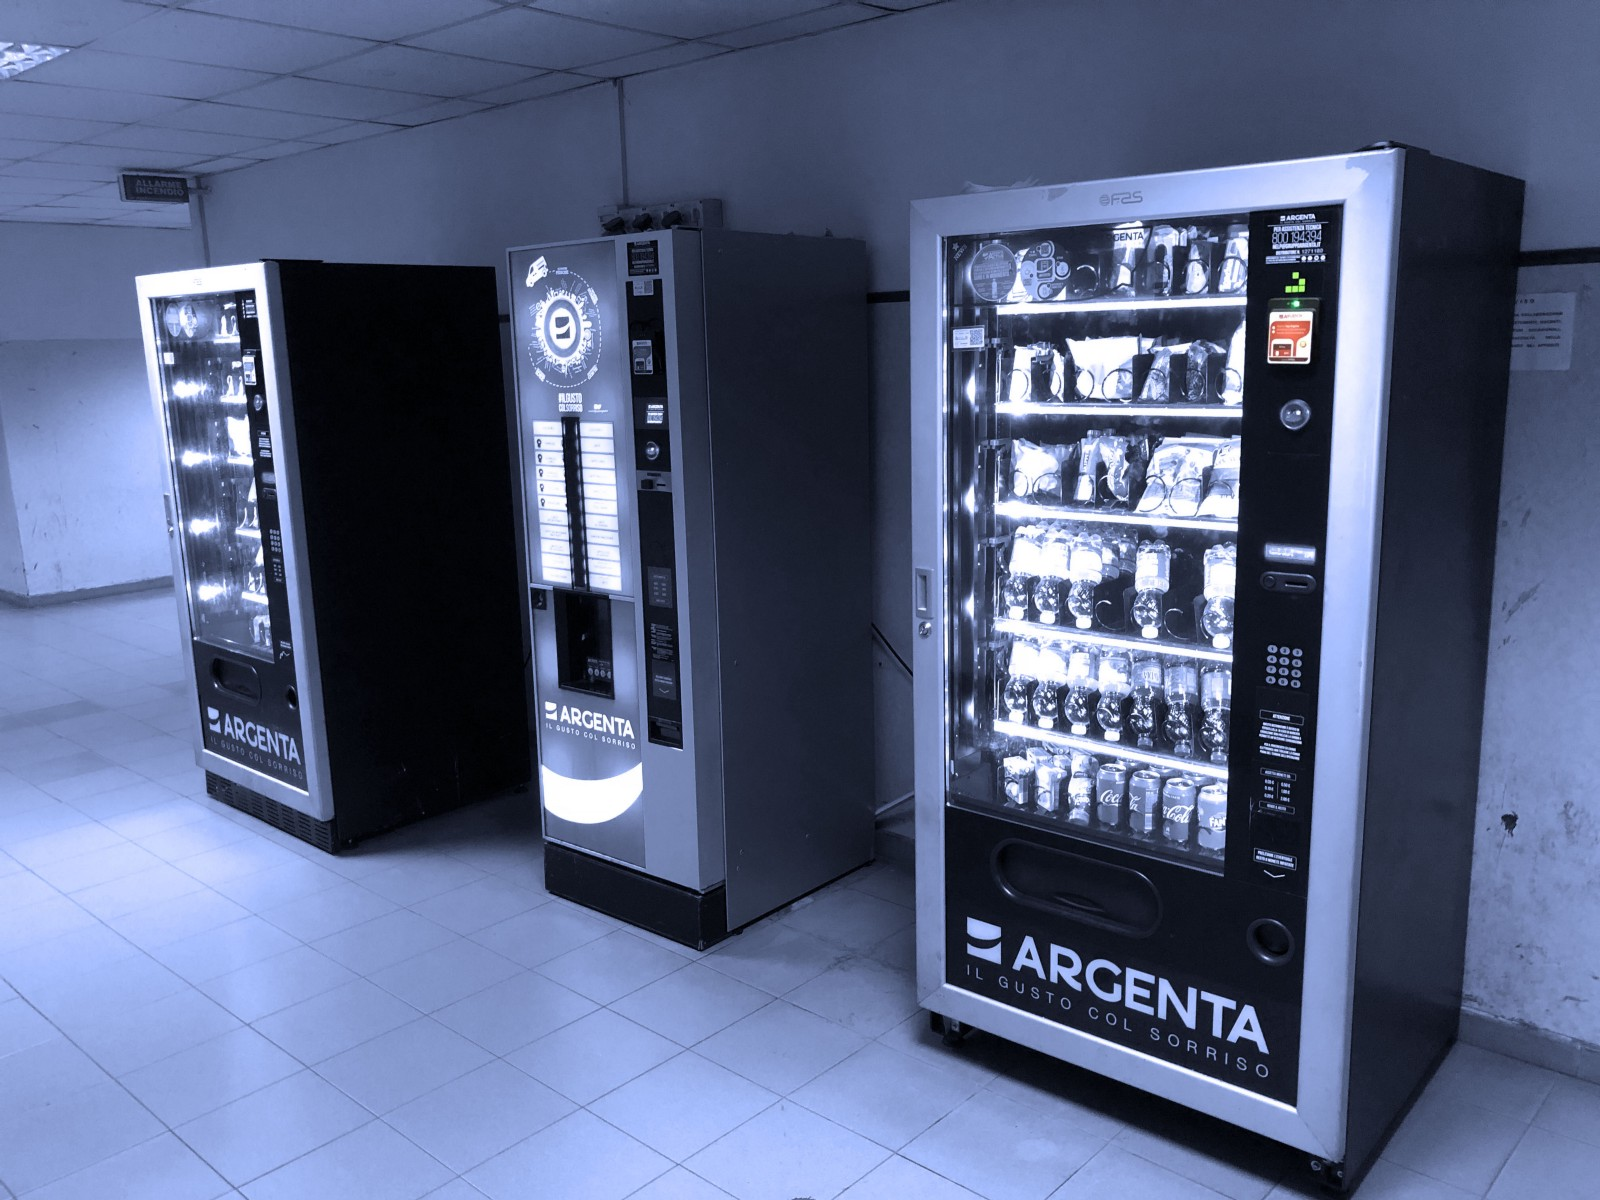 How I hacked modern Vending Machines - By Matteo Pisani